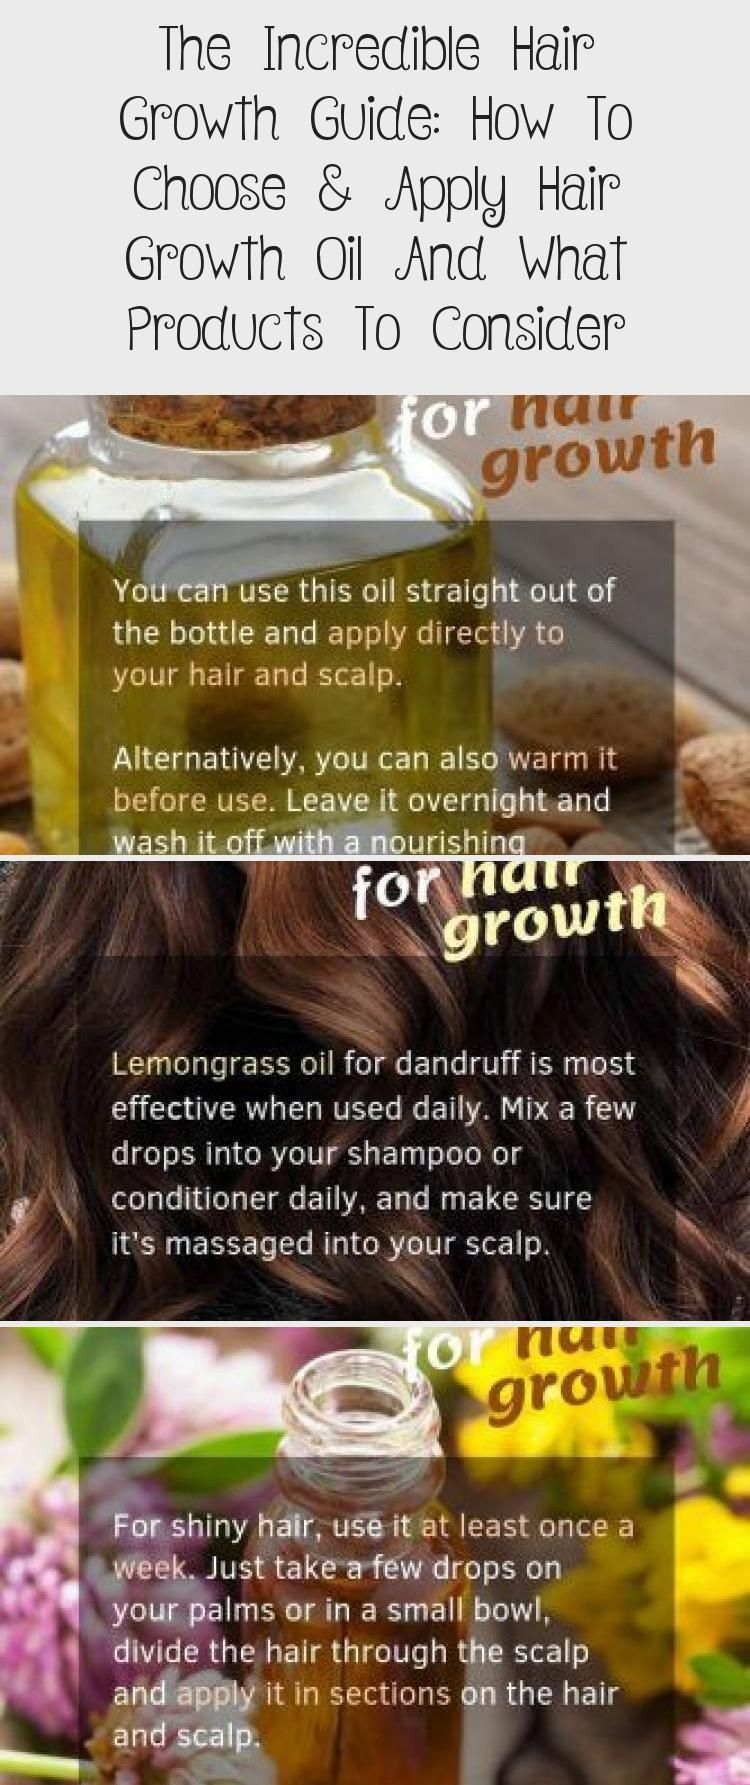 Vitamins for Hair Growth} and The Incredible Hair Growth Guide: How To Choose And Apply Hair Growth Oil And What Products To Consider ★ #hairgrowthSmoothie #hairgrowthSerum #hairgrowthRoutine #Naturalhairgrowth #ScalpDetoxhairgrowth